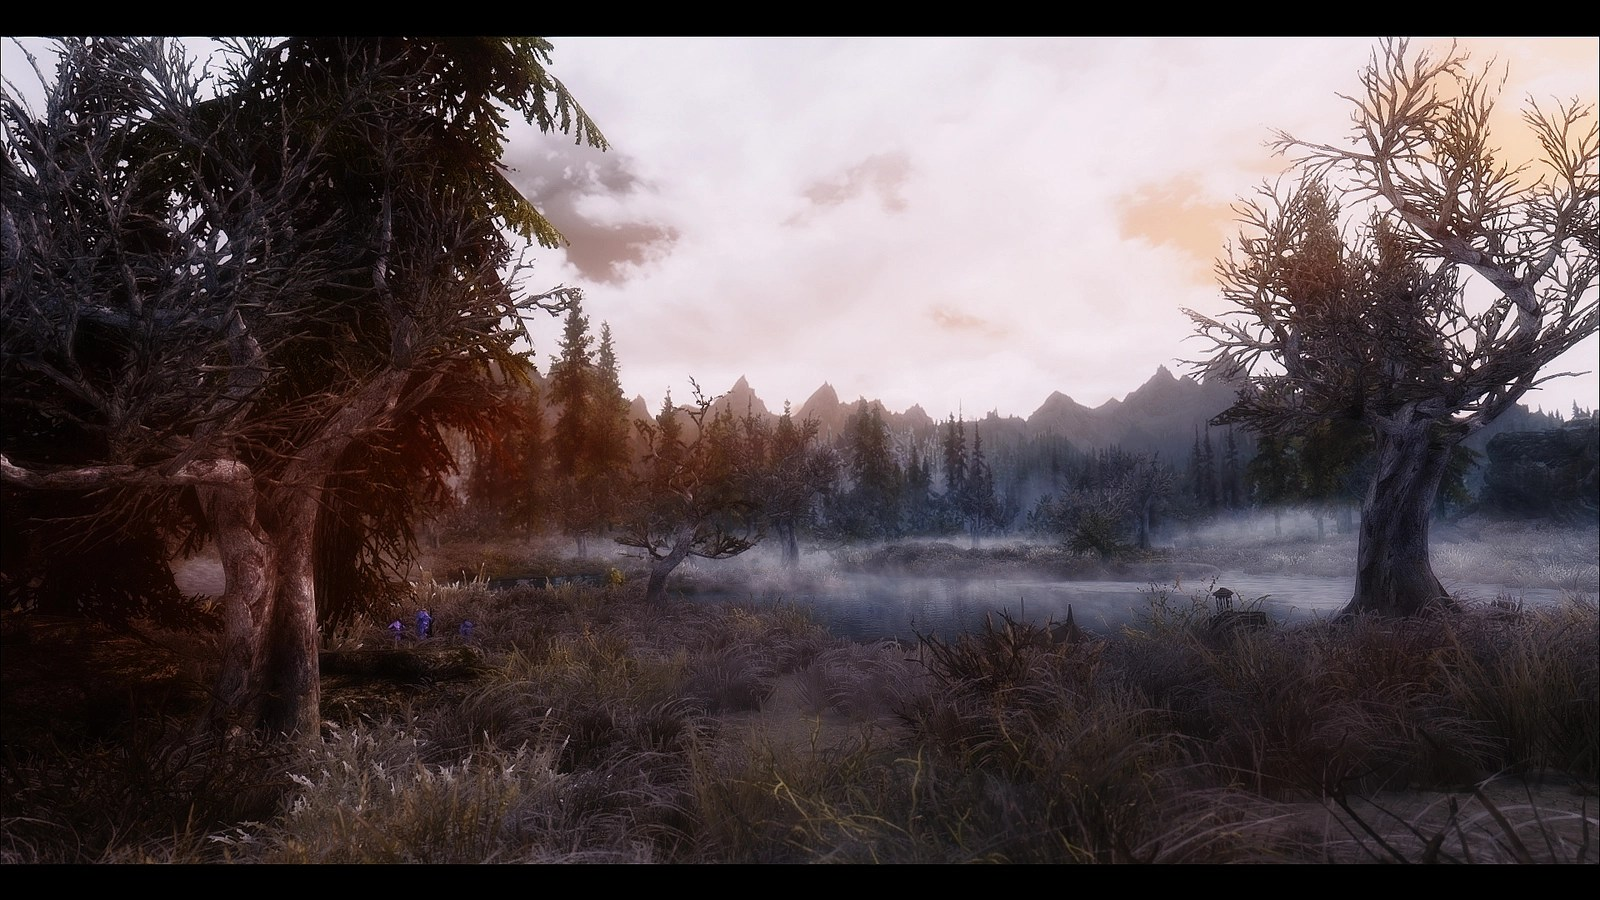 New Skyrim ENBseries Mod Screens Show Photo Realistic Graphics Still Not Achievable On PS4Xbox One